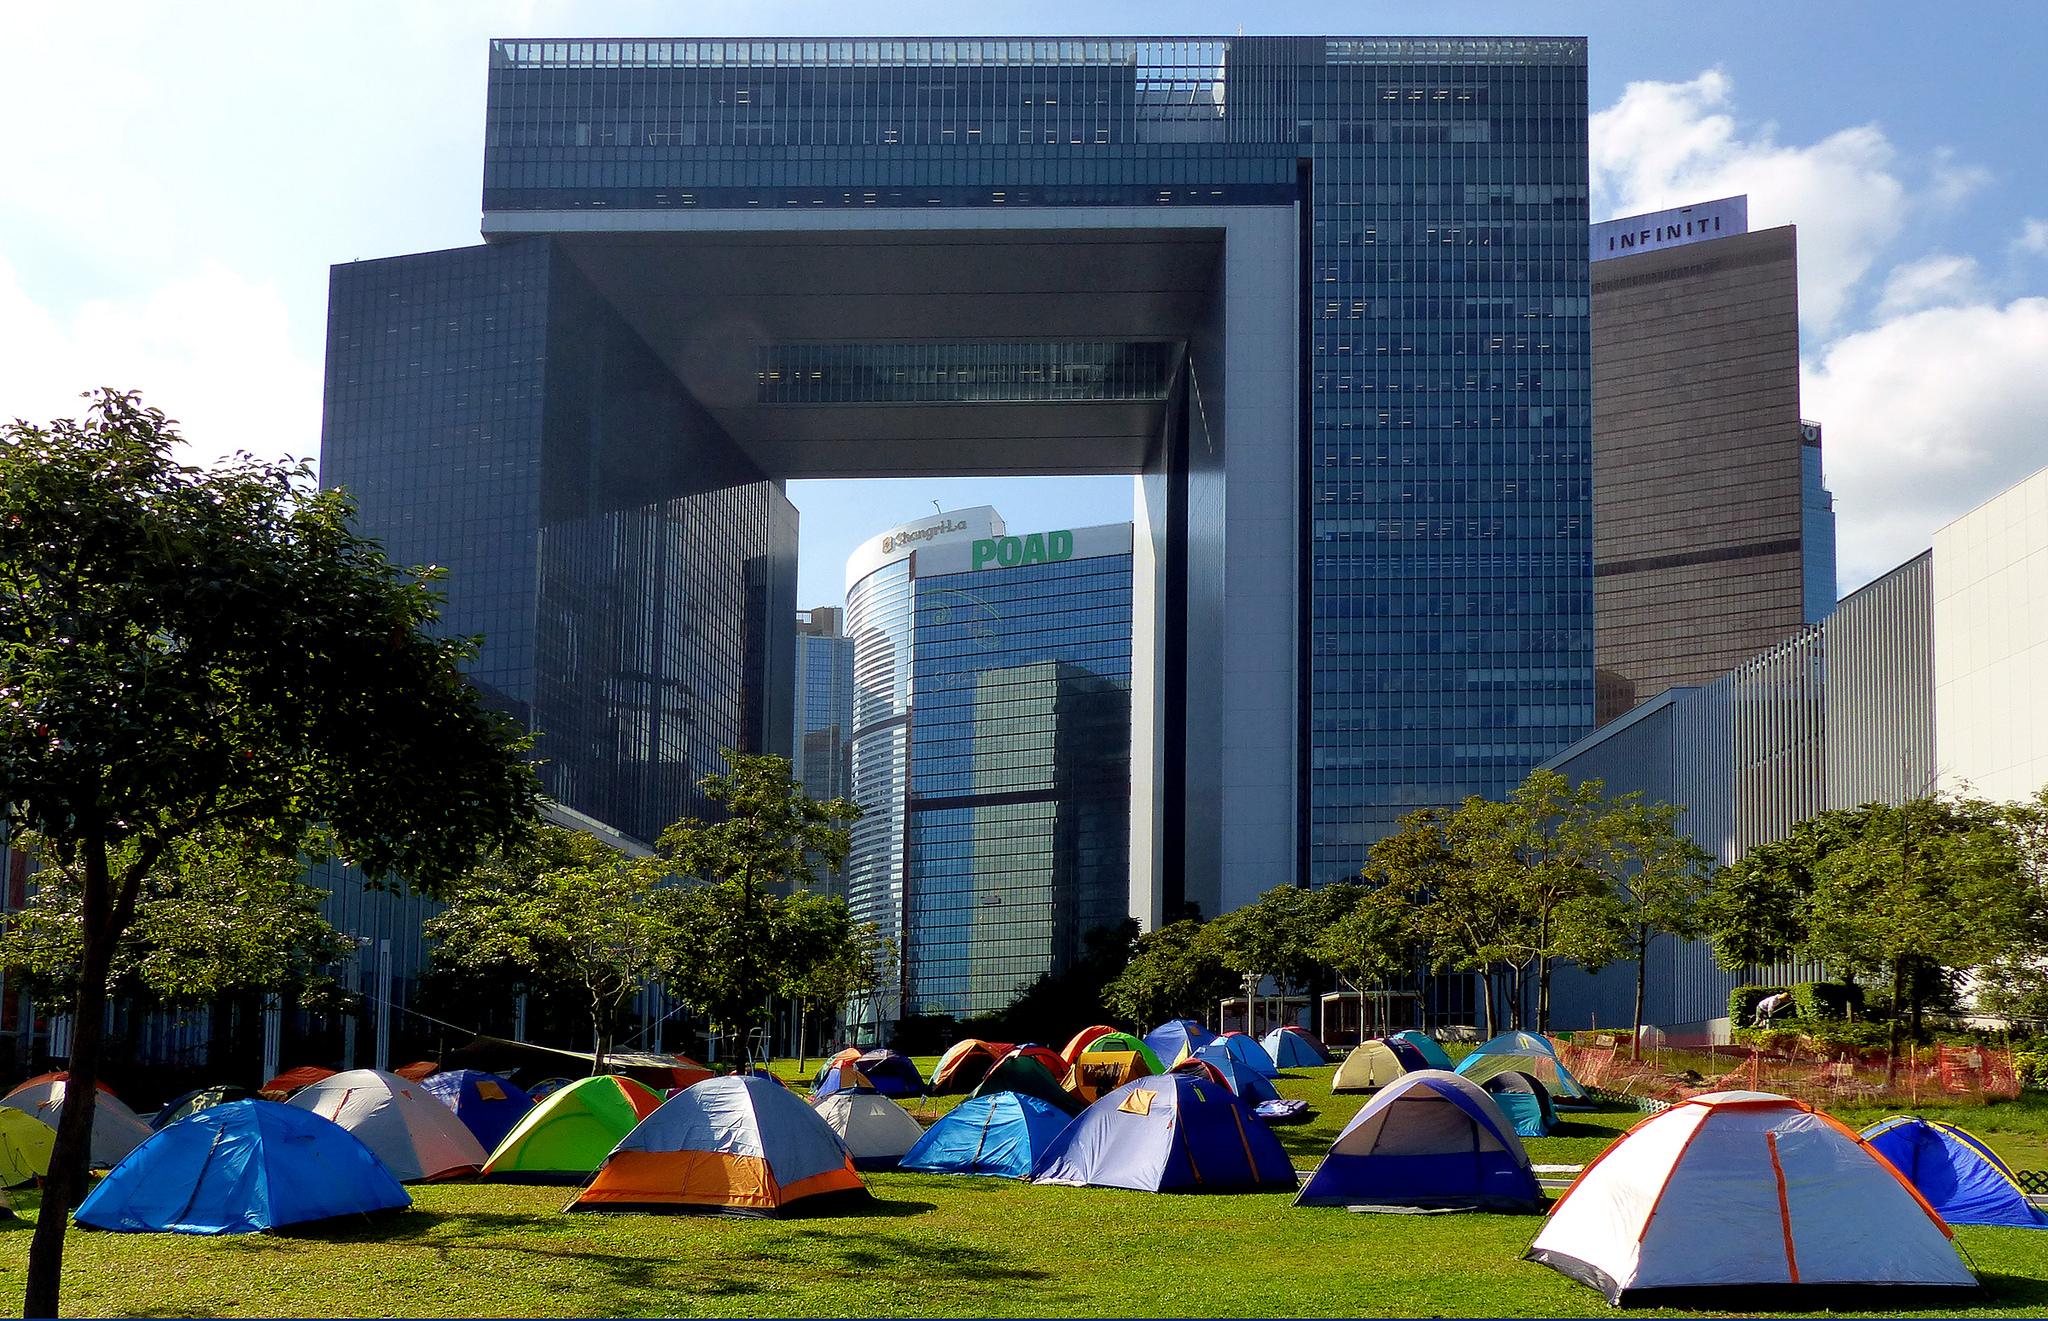 Photo credit: Bernard Spragg, Occupy Central, 2014, CC2.0